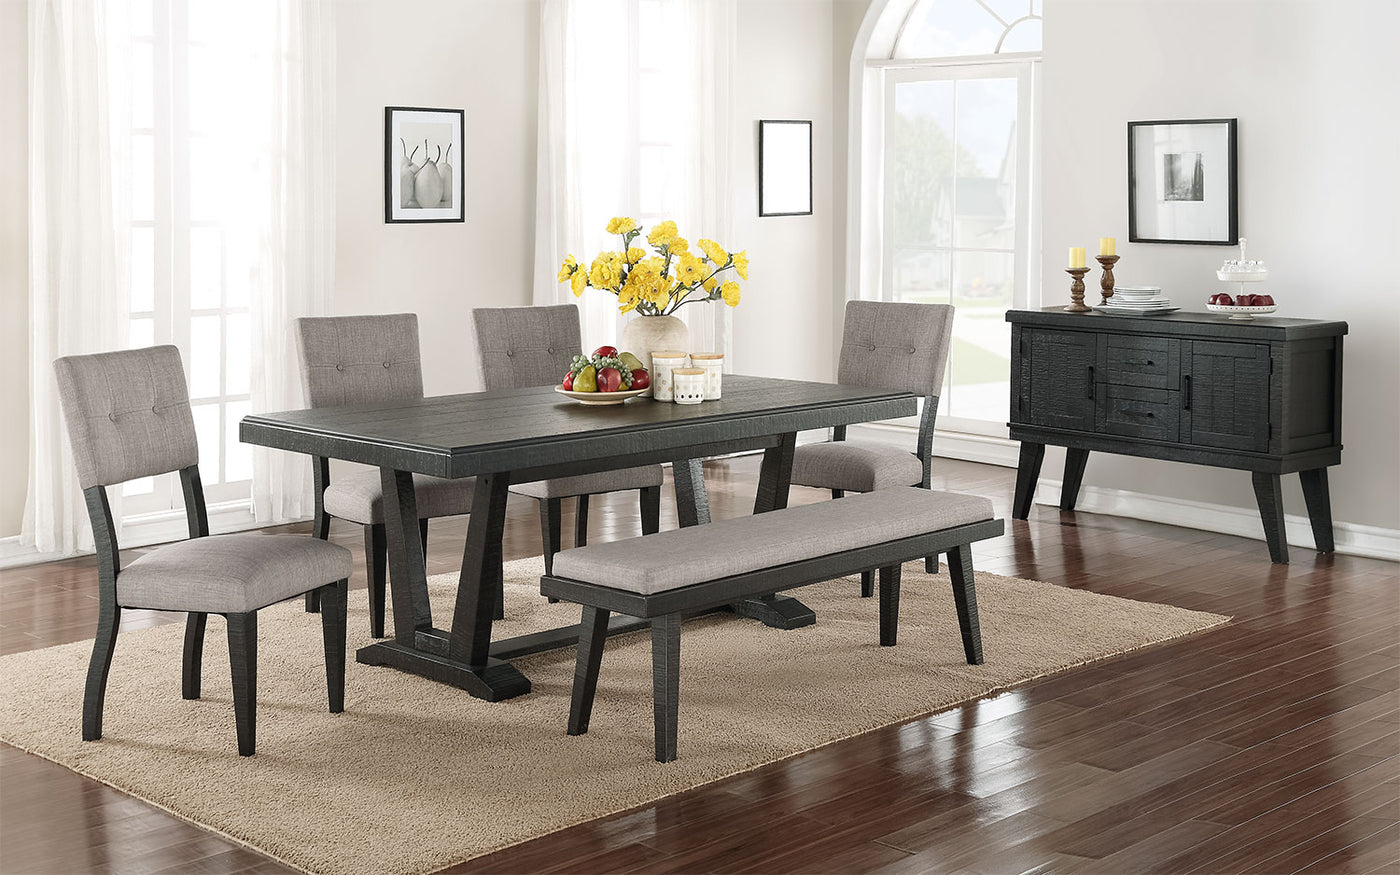 850d24c0f52 Imari 6-Piece Dining Room Set - Black and Grey. Touch to zoom